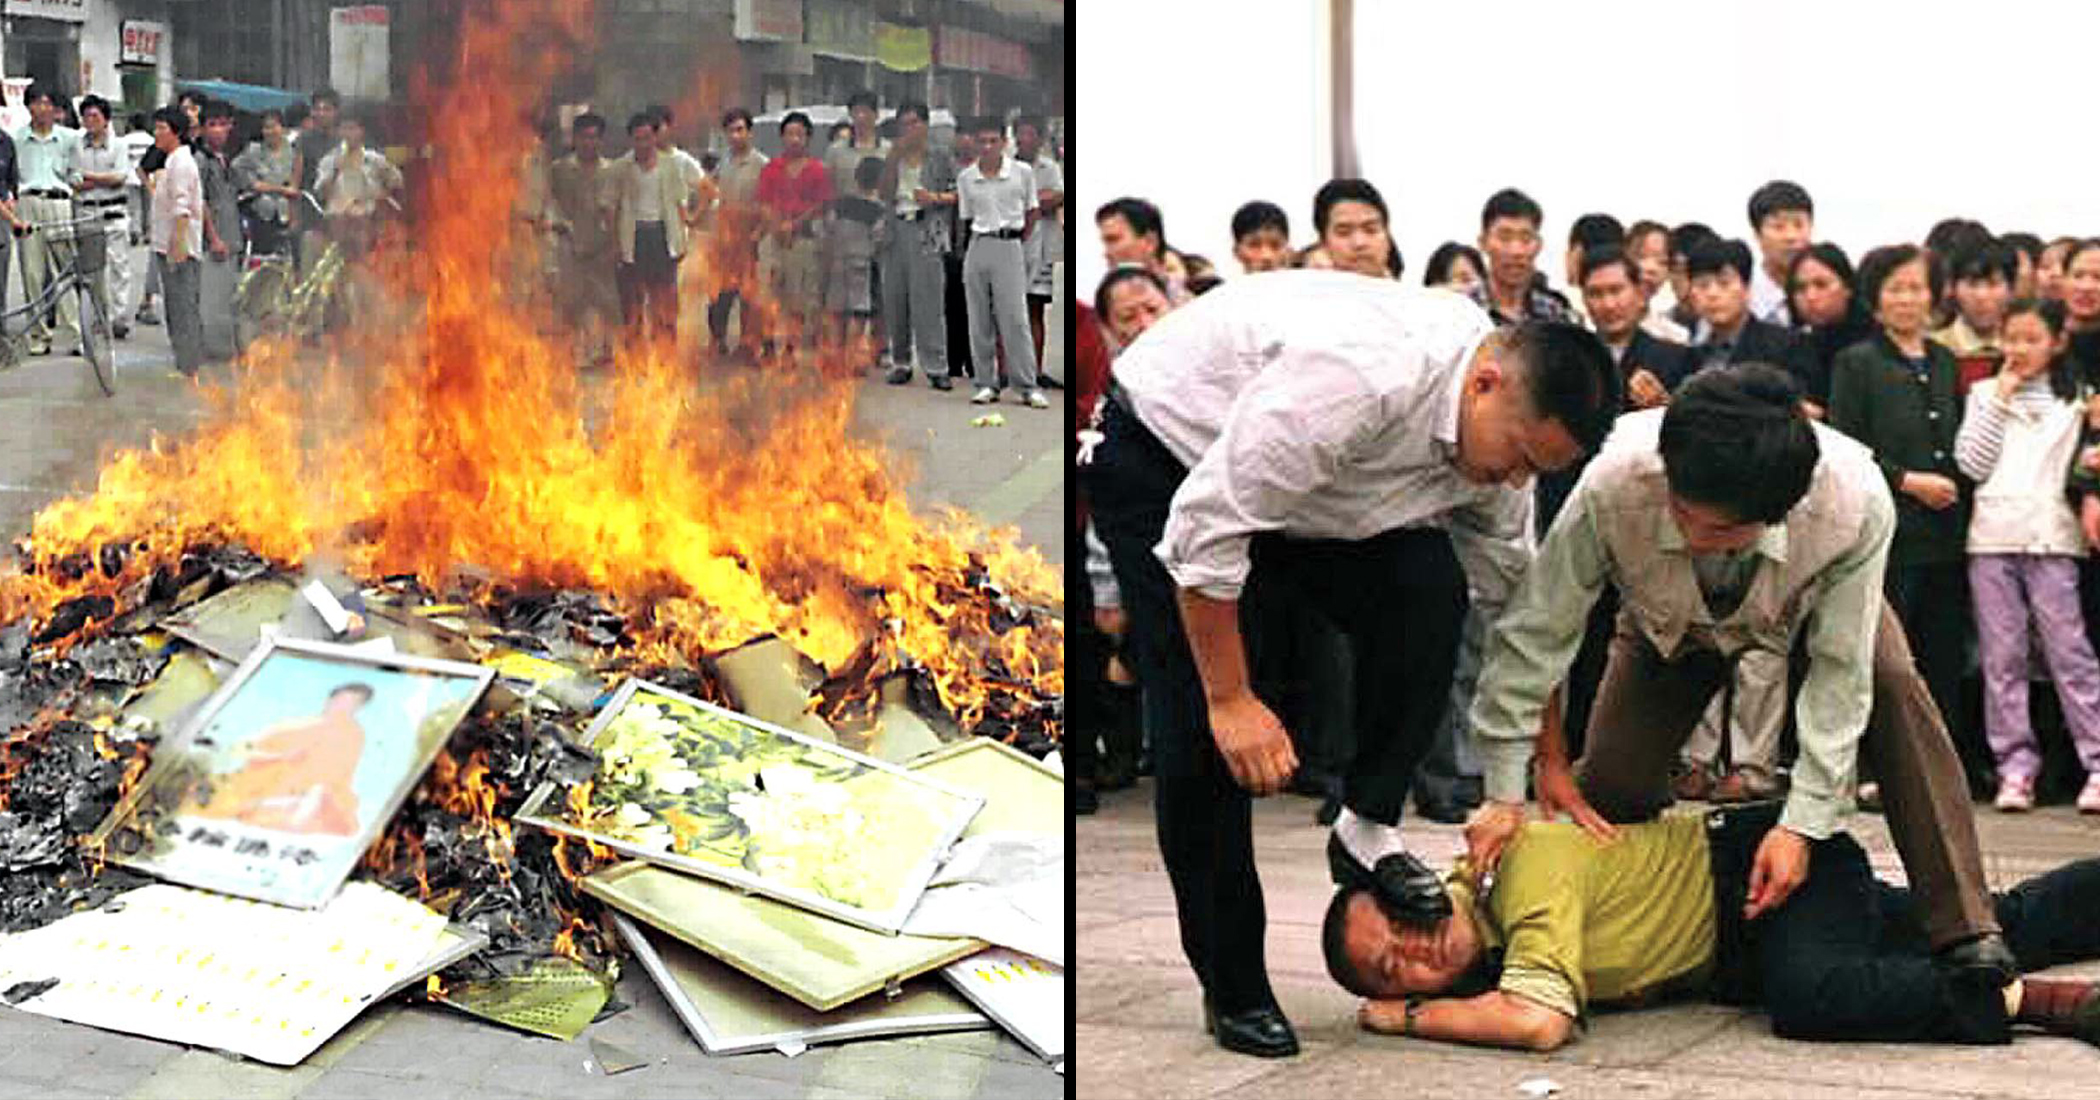 Religious books seized and burned in communist China, believers given jail terms